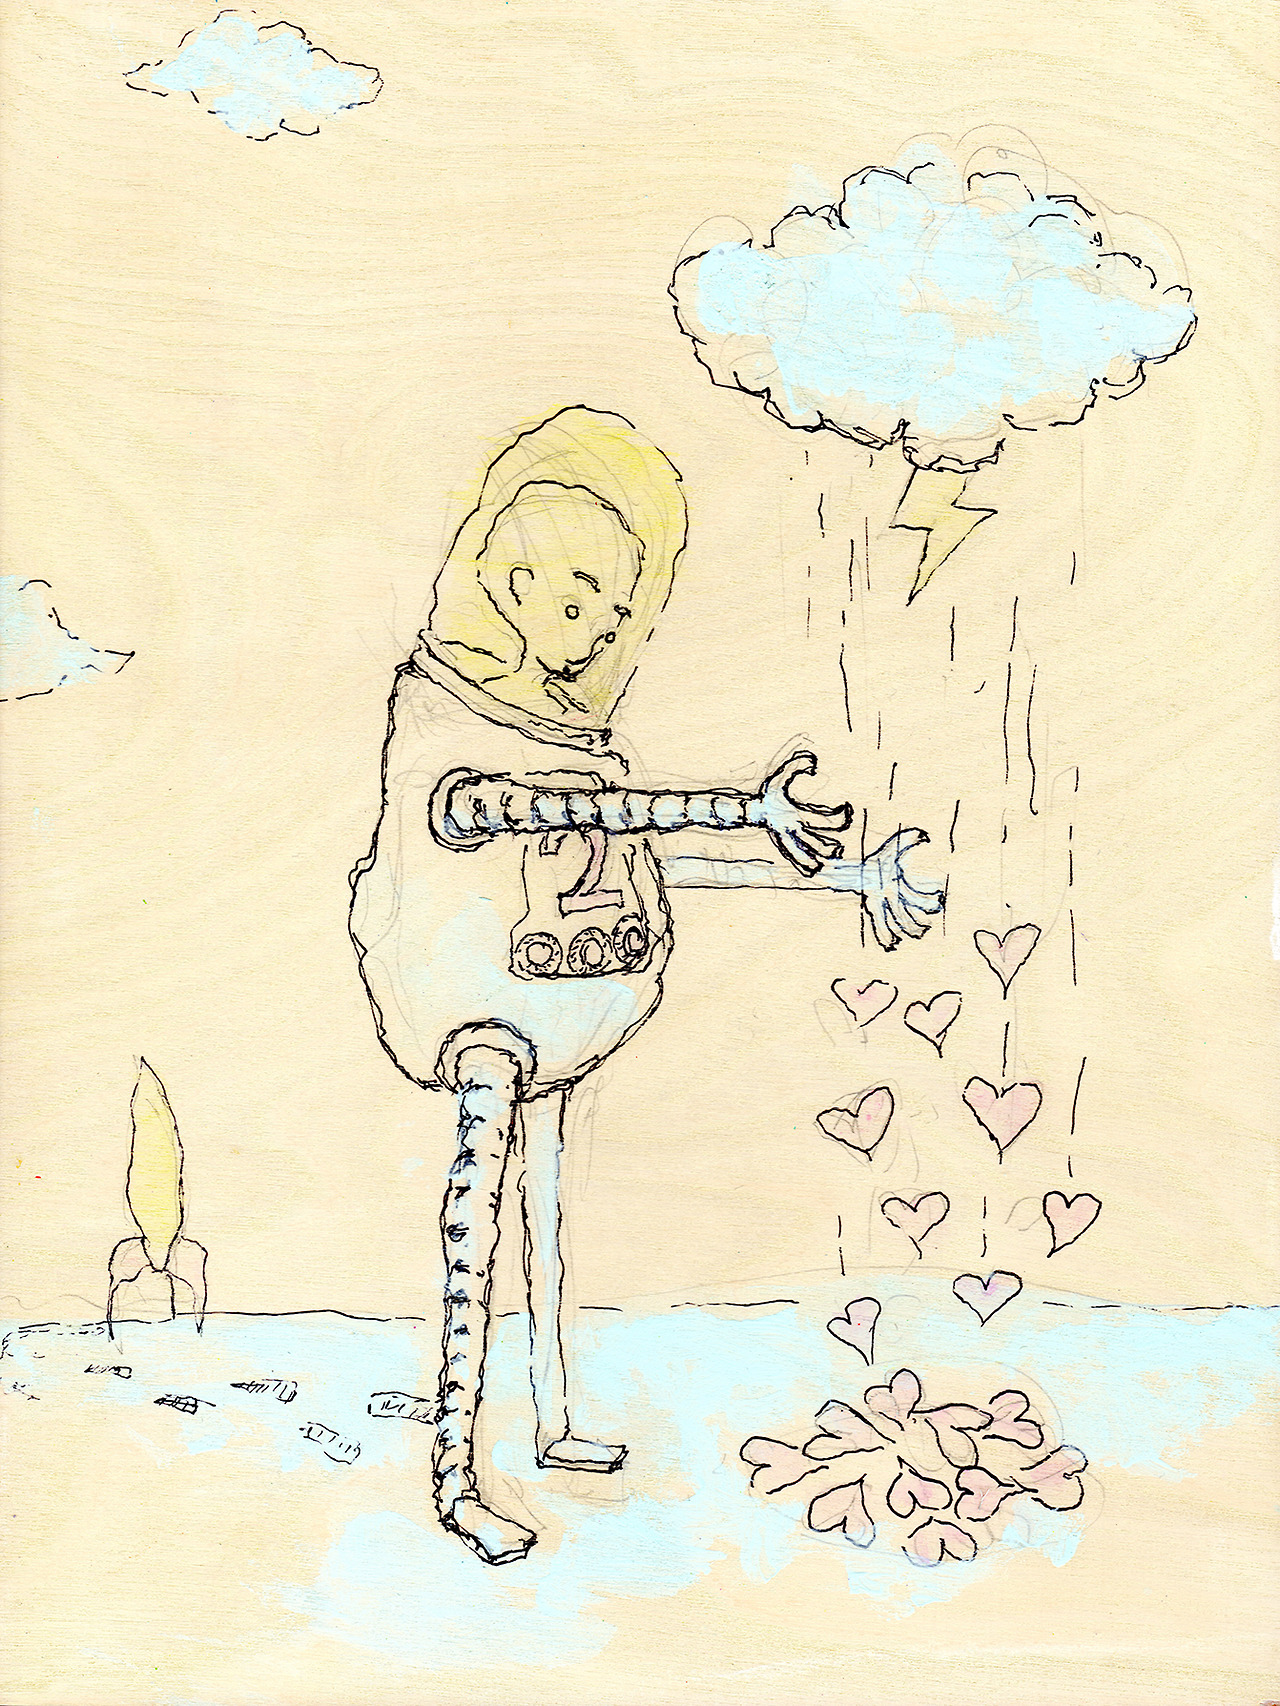 "5/16/15 - The Too-Safe Safe Suit 2. Ultimate protection. 9"" x 12"" Acrylic paint, sharpie, pencil on birch panel. Available to purchase here: http://taylorwinder.bigcartel.com Prints available here: http://society6.com/taylorwinder"